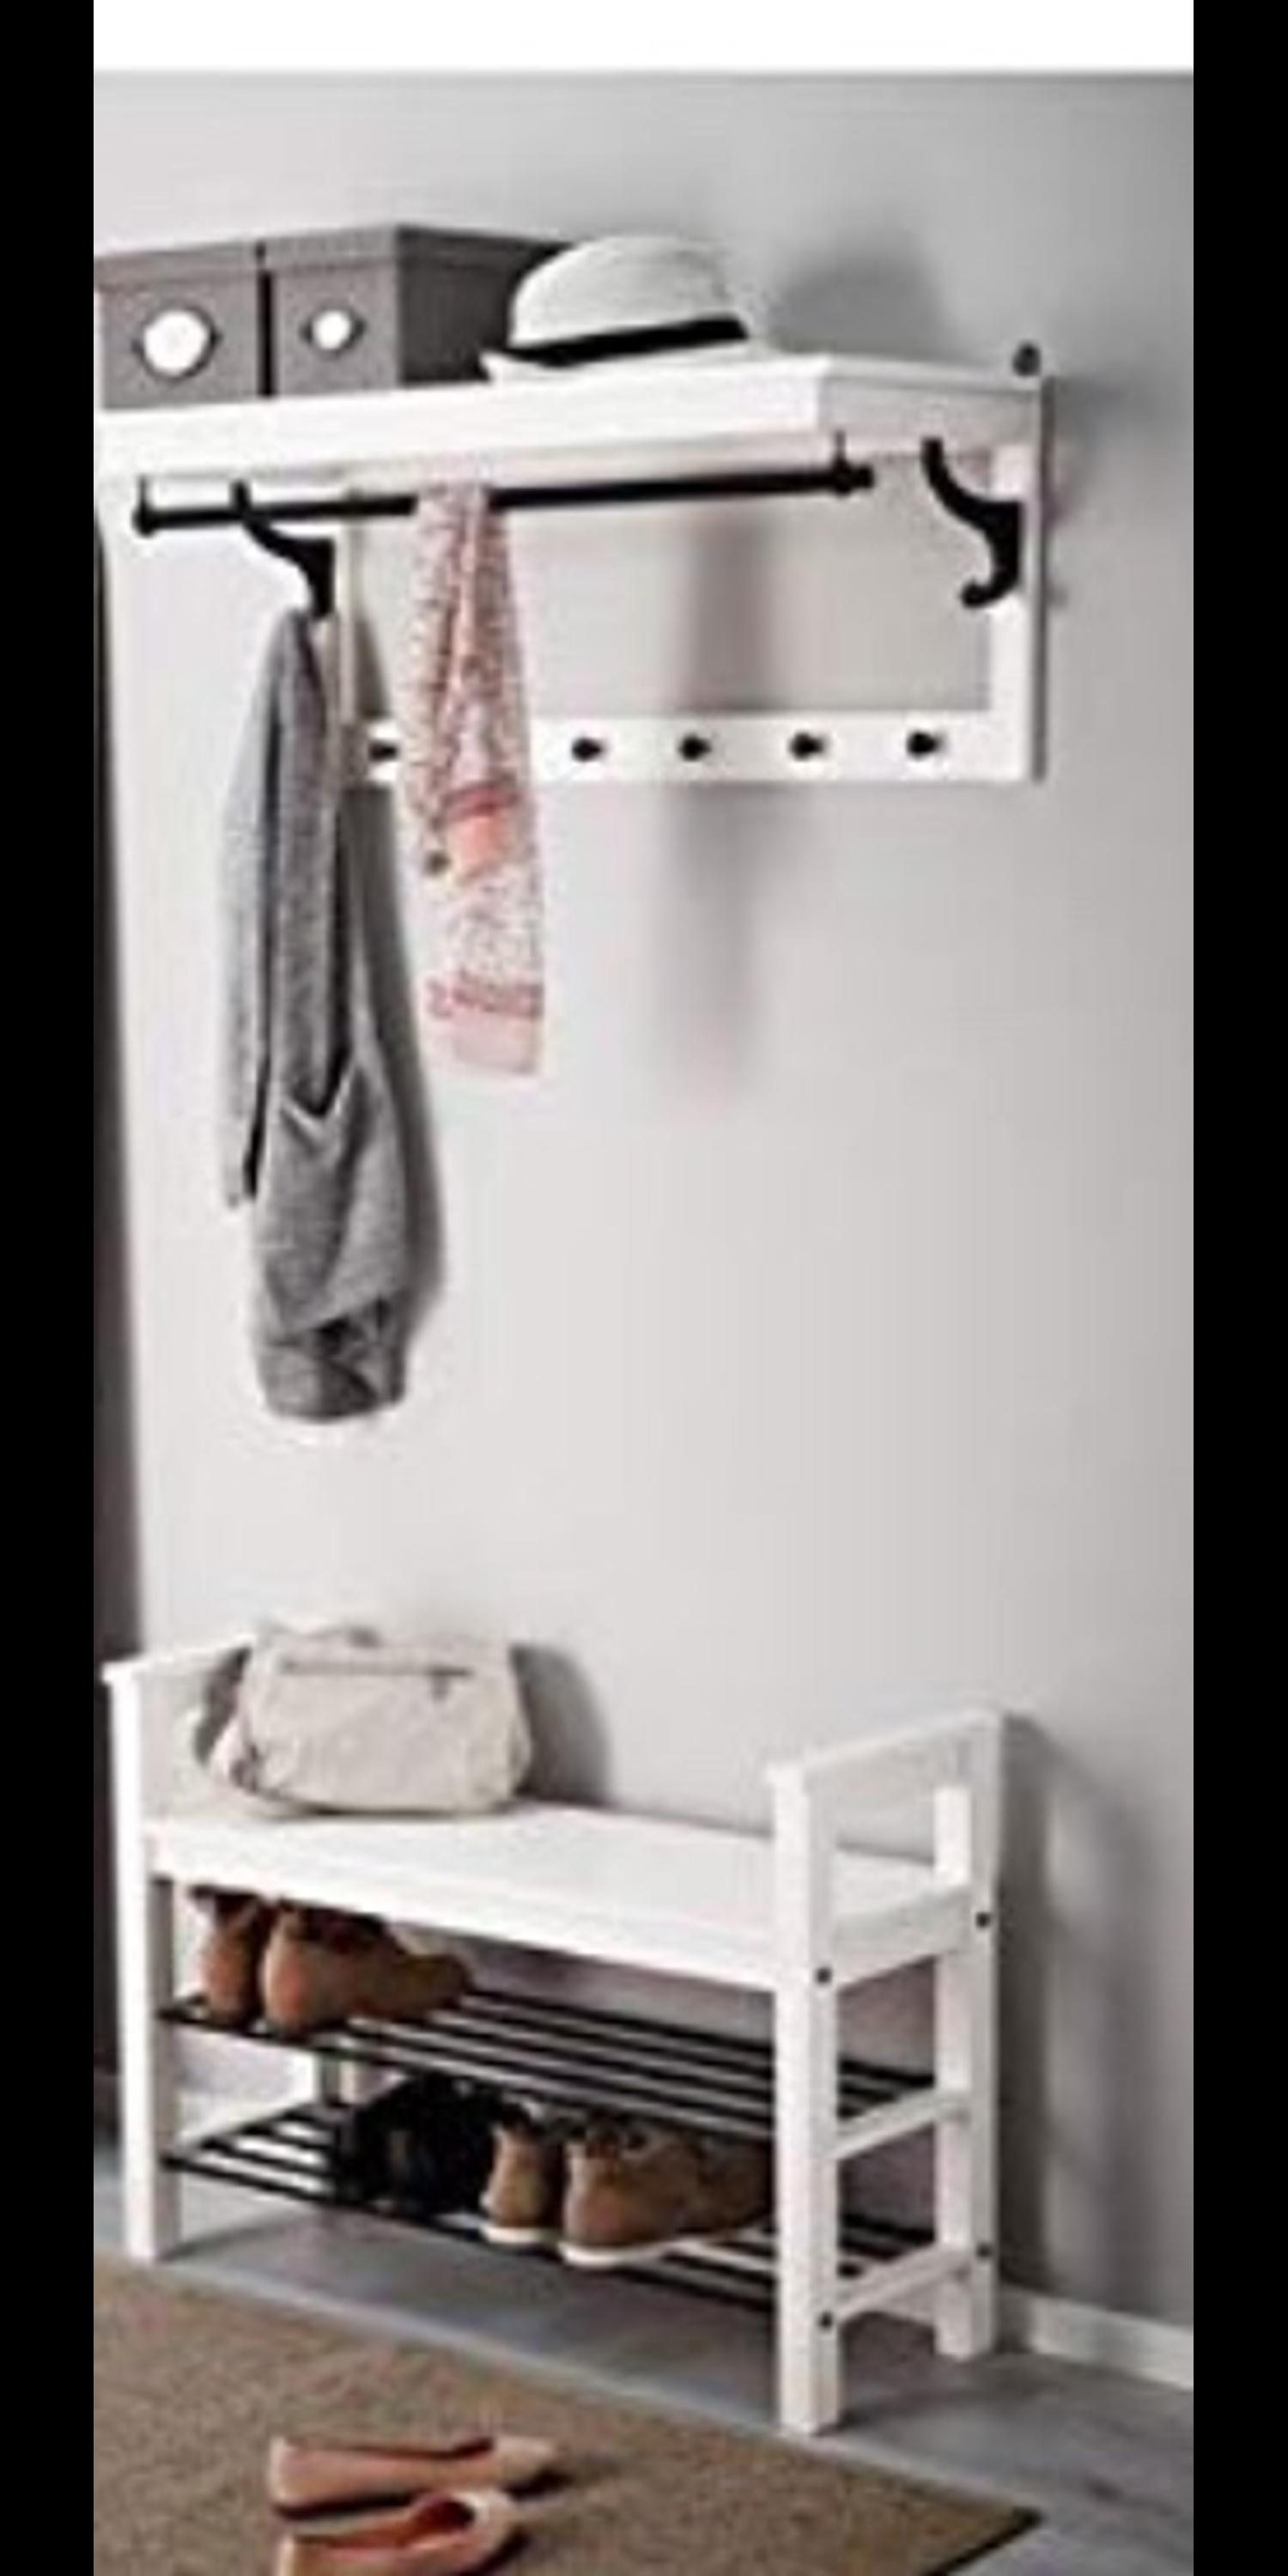 Flurbank Ikea Bank Garderobe Ikea - Bank Now